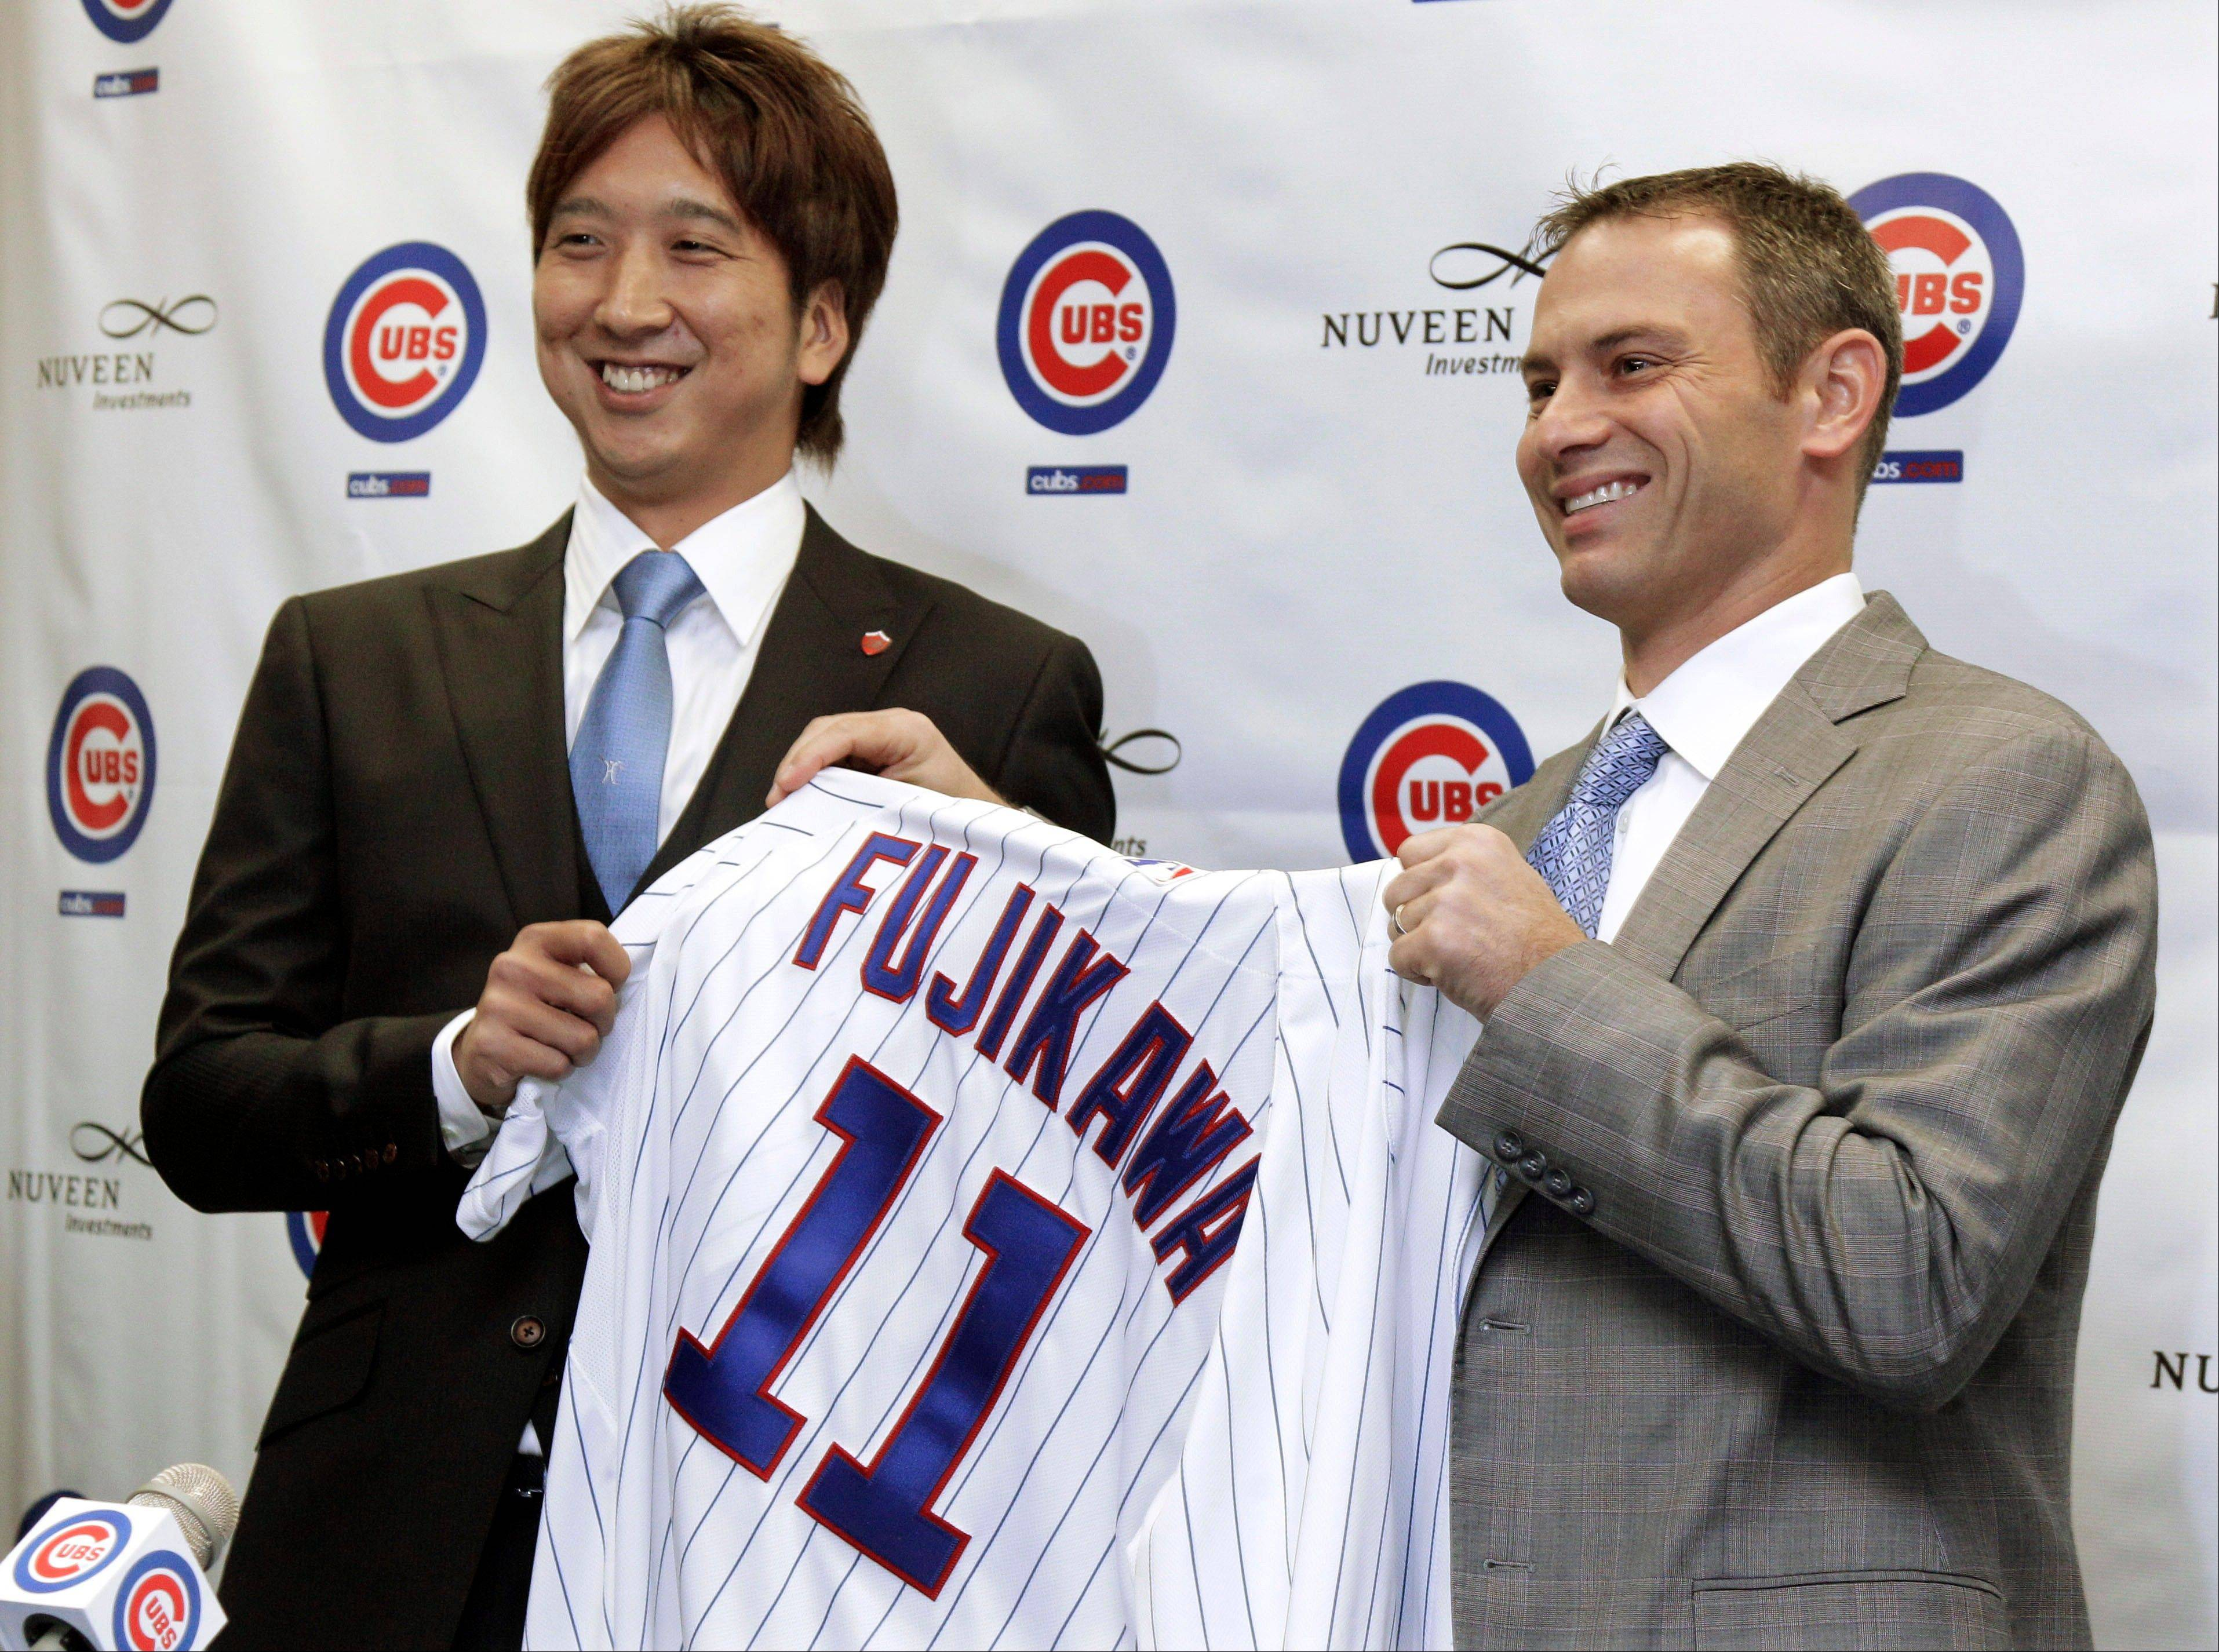 Cubs general manager Jed Hoyer presents a jersey to new pitcher Kyuji Fujikawa of Japan on Friday at Wrigley Field. Hoyer insists Carlos Marmol is the team's closer and says Fujikawa is an important addition to the team's bullpen.